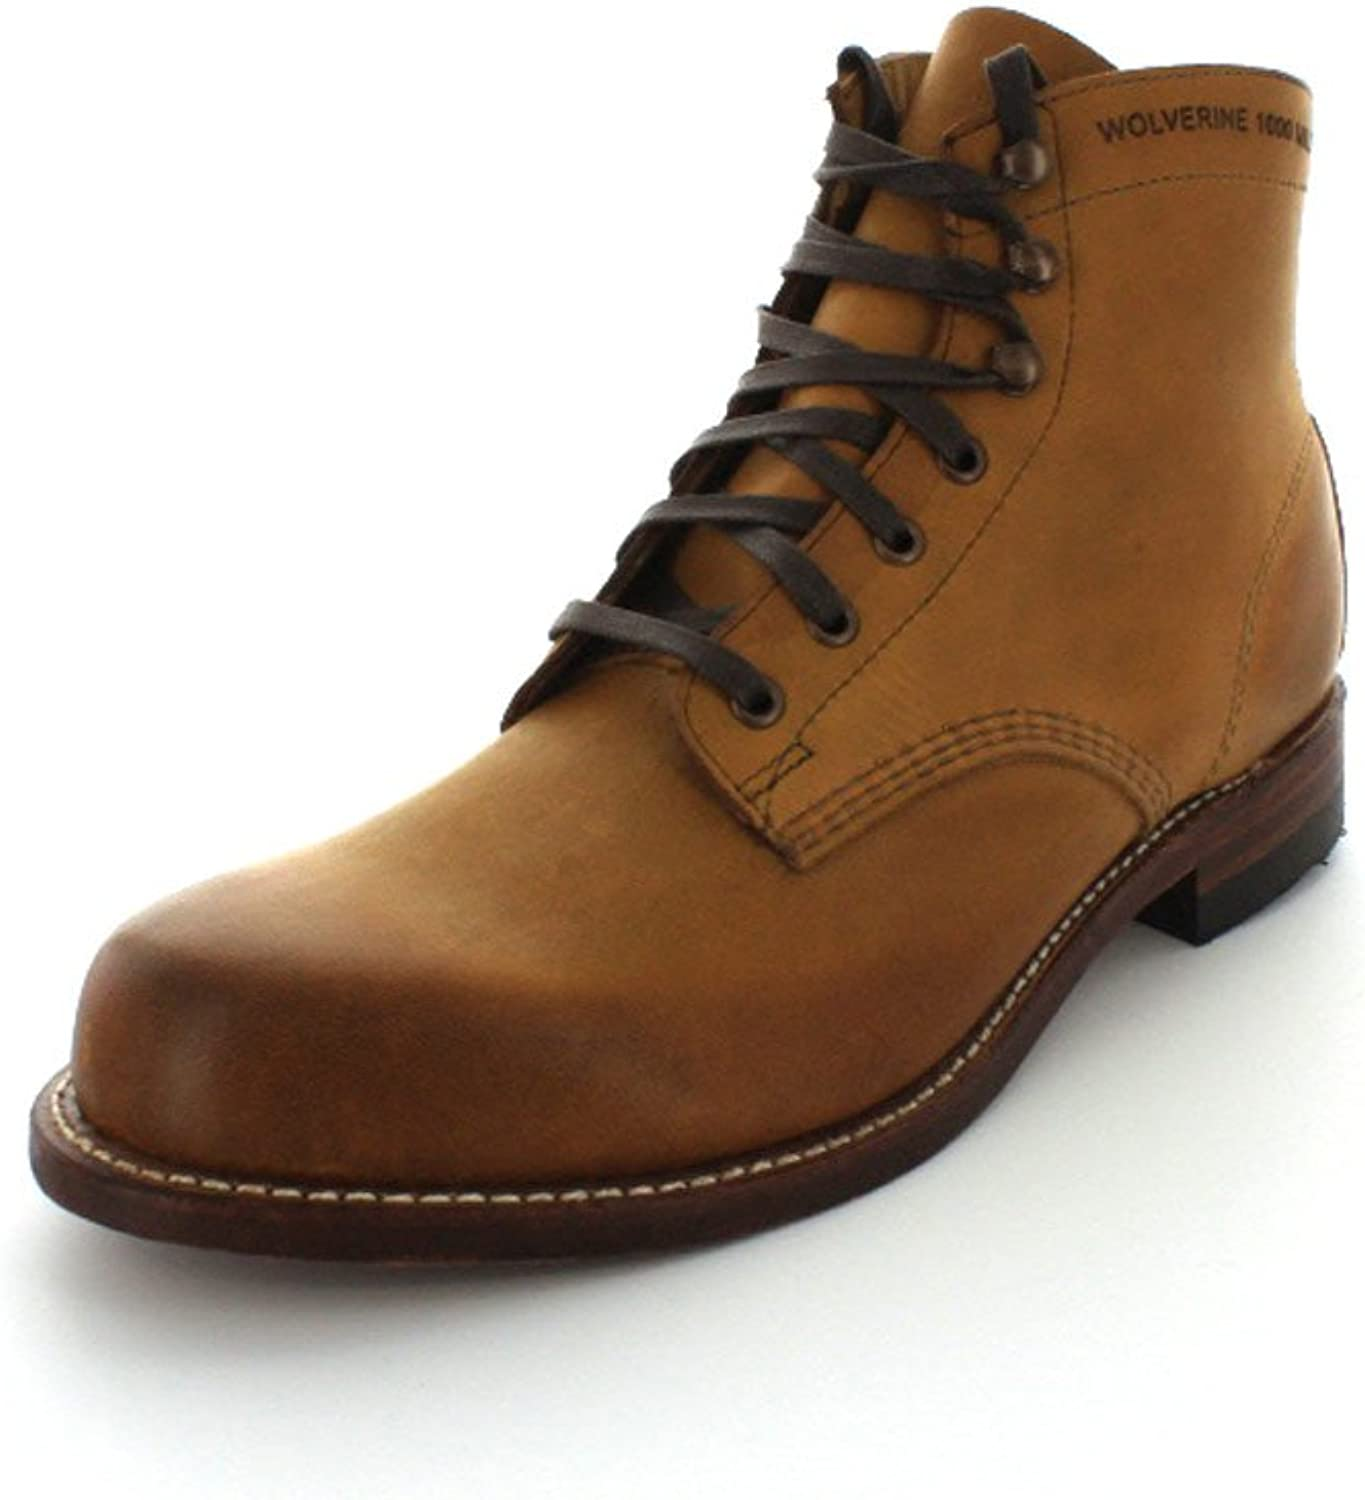 WOLVERINE 1000 MILE Men - Stiefel 1000 MILE - tan